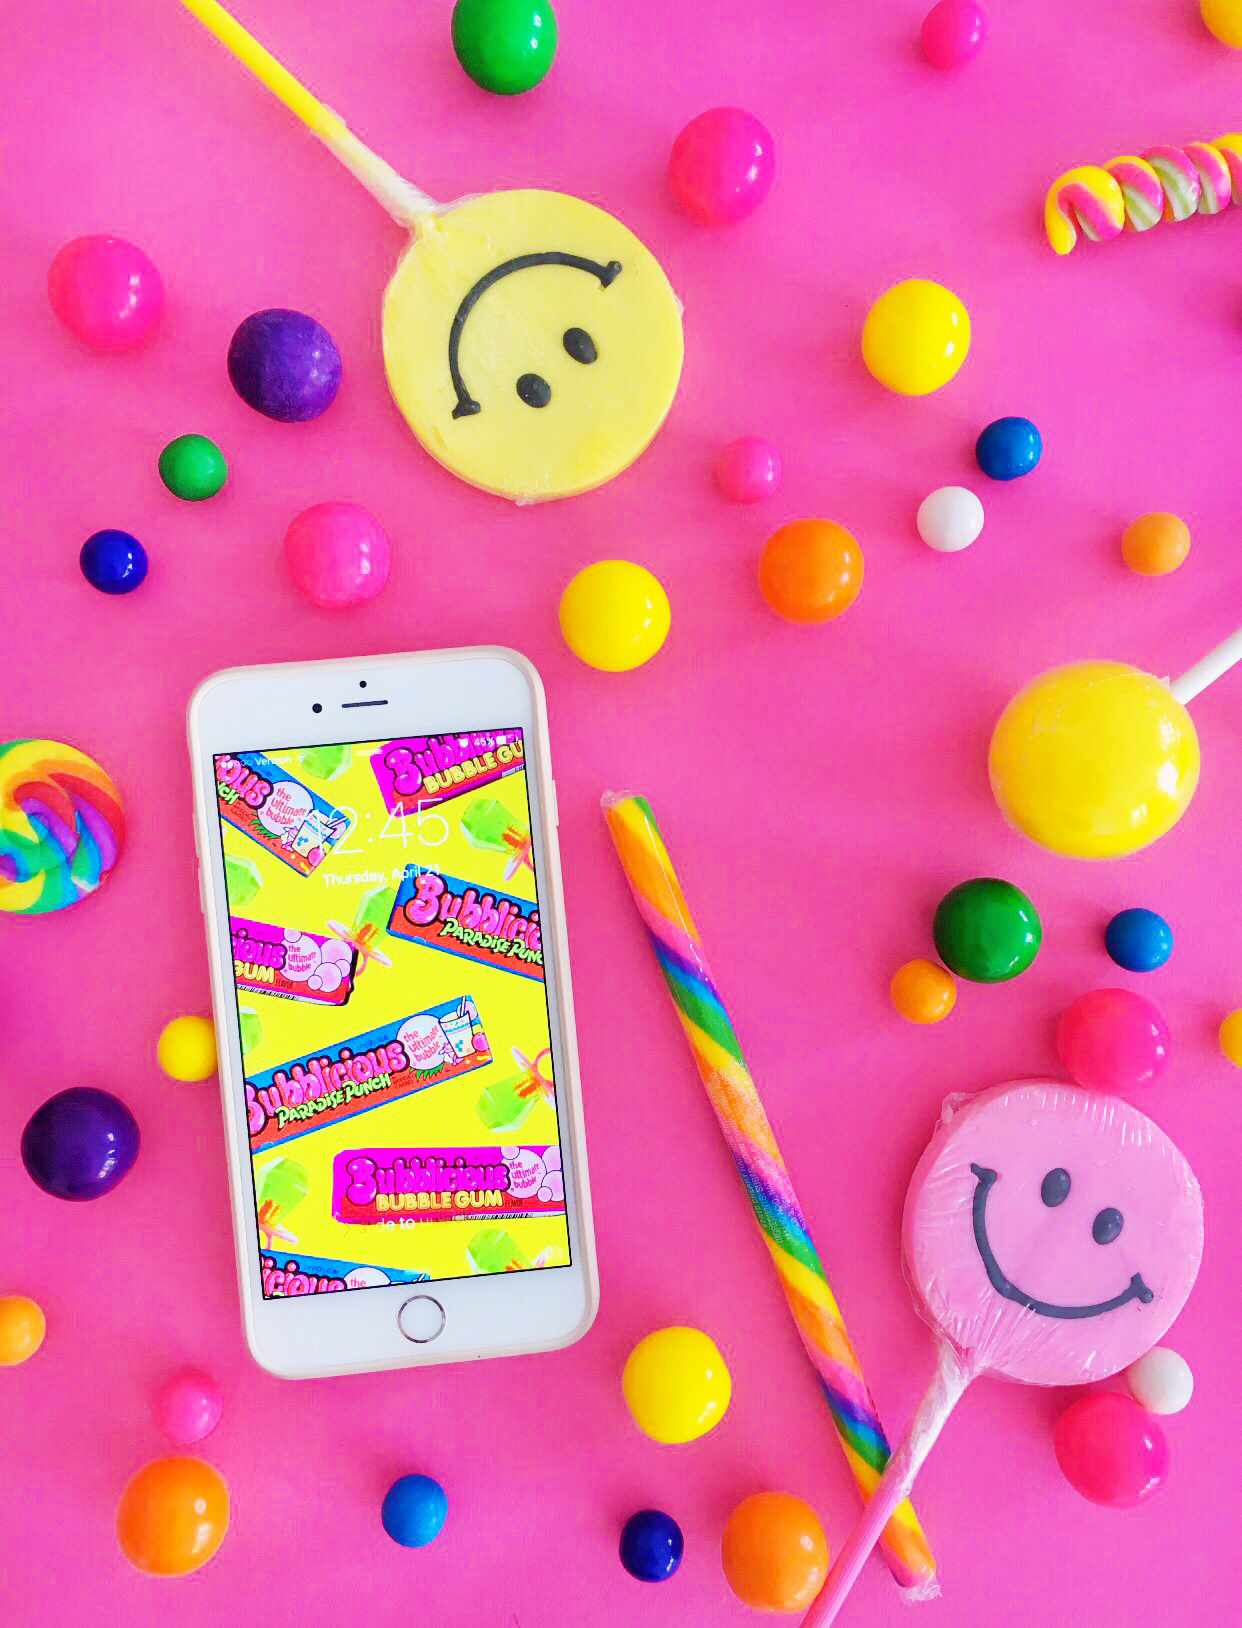 Throwback Candy Phone Backgrounds   Studio DIY 1242x1628